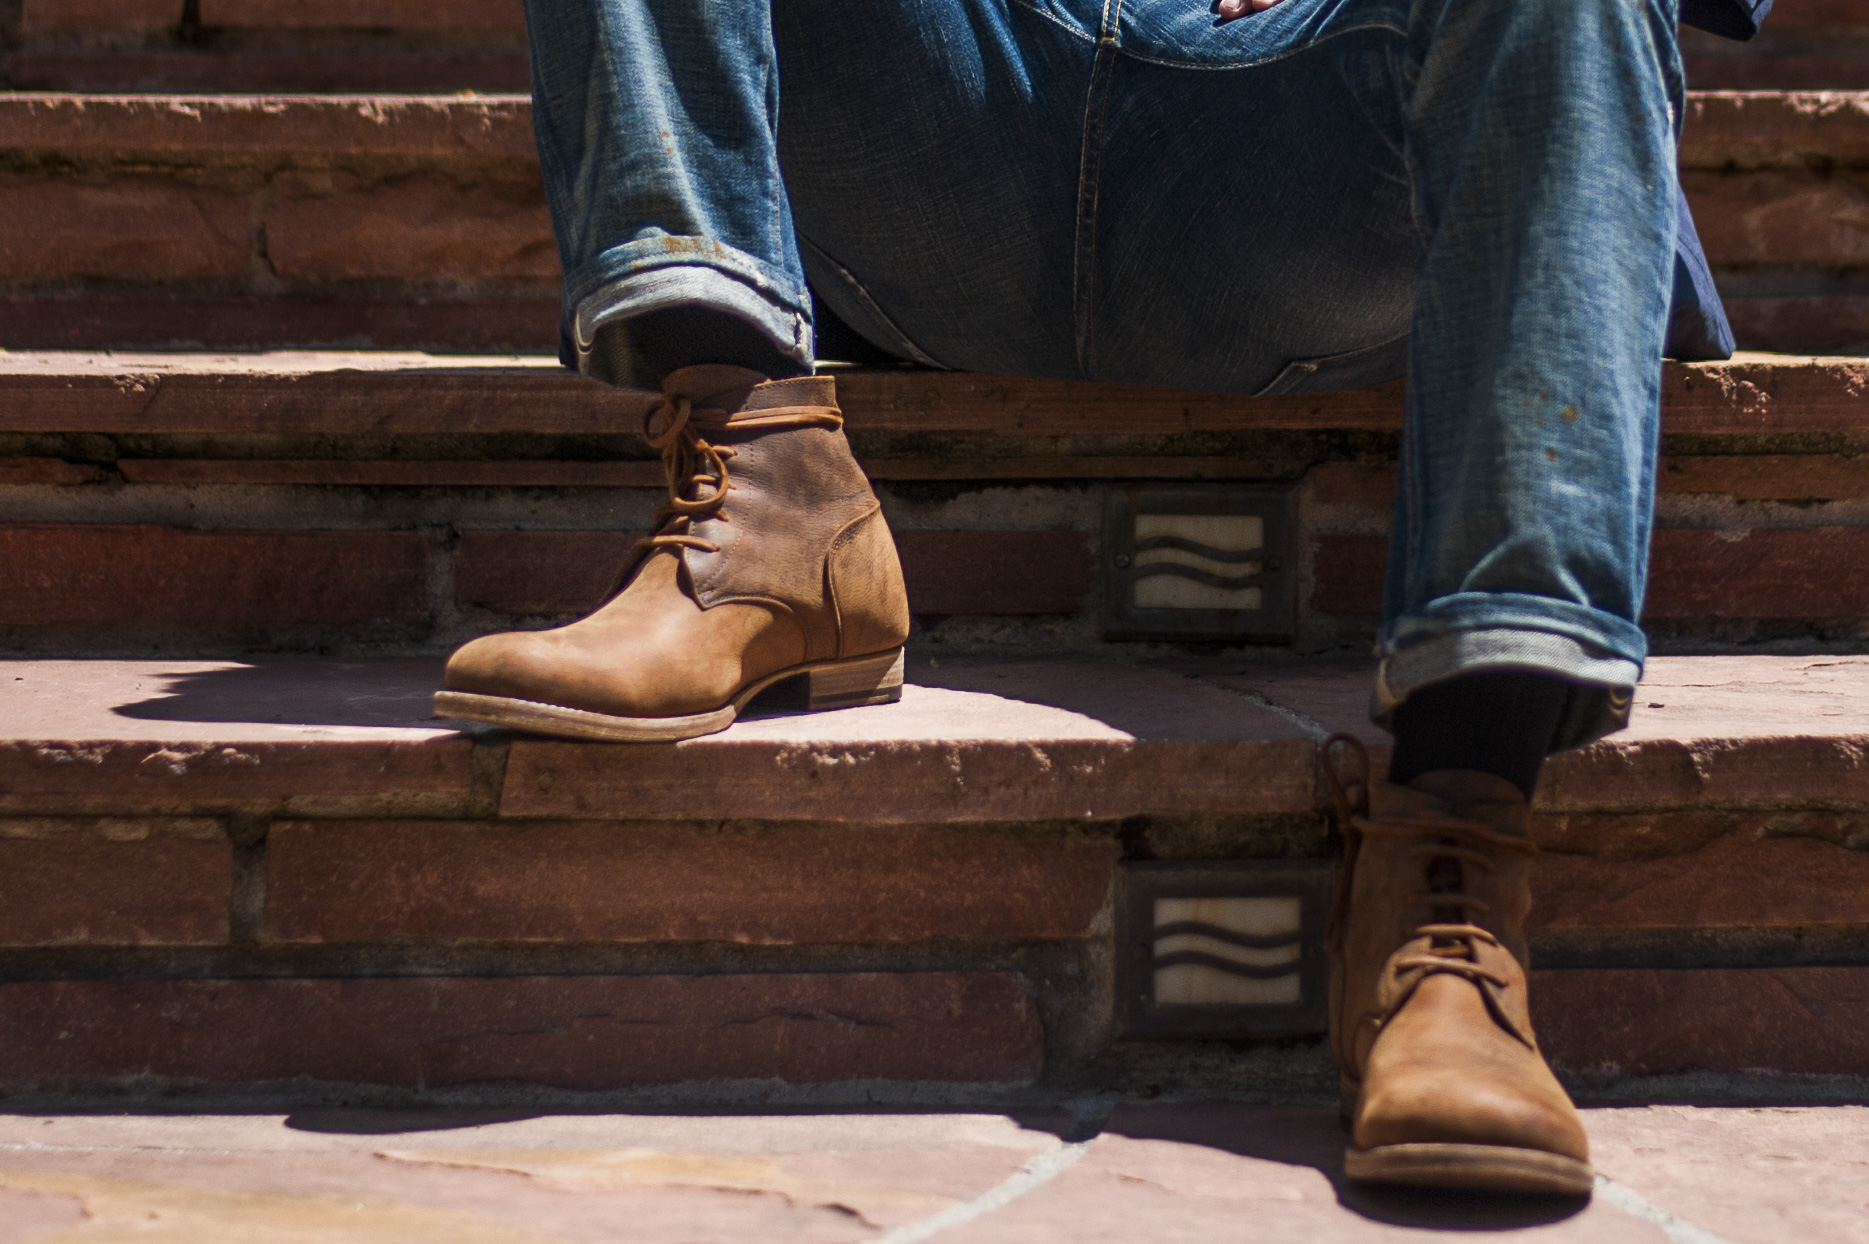 Peter Nappi Review: The Julius Basso Boot peter nappit styleforum peter nappi review styleforum